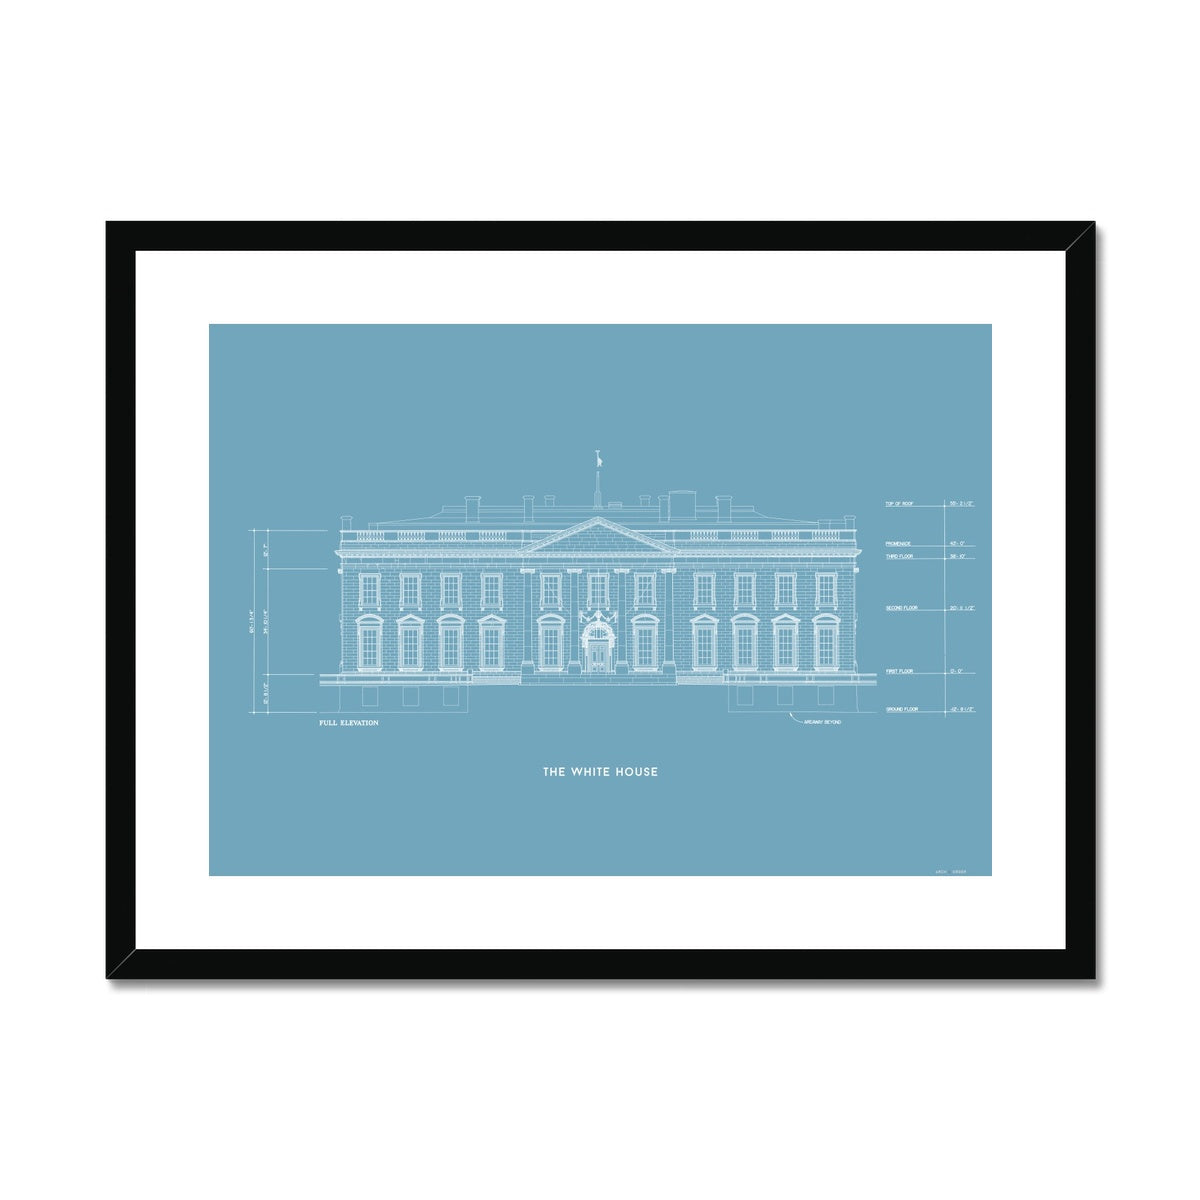 The White House North Elevation - Blue -  Framed & Mounted Print